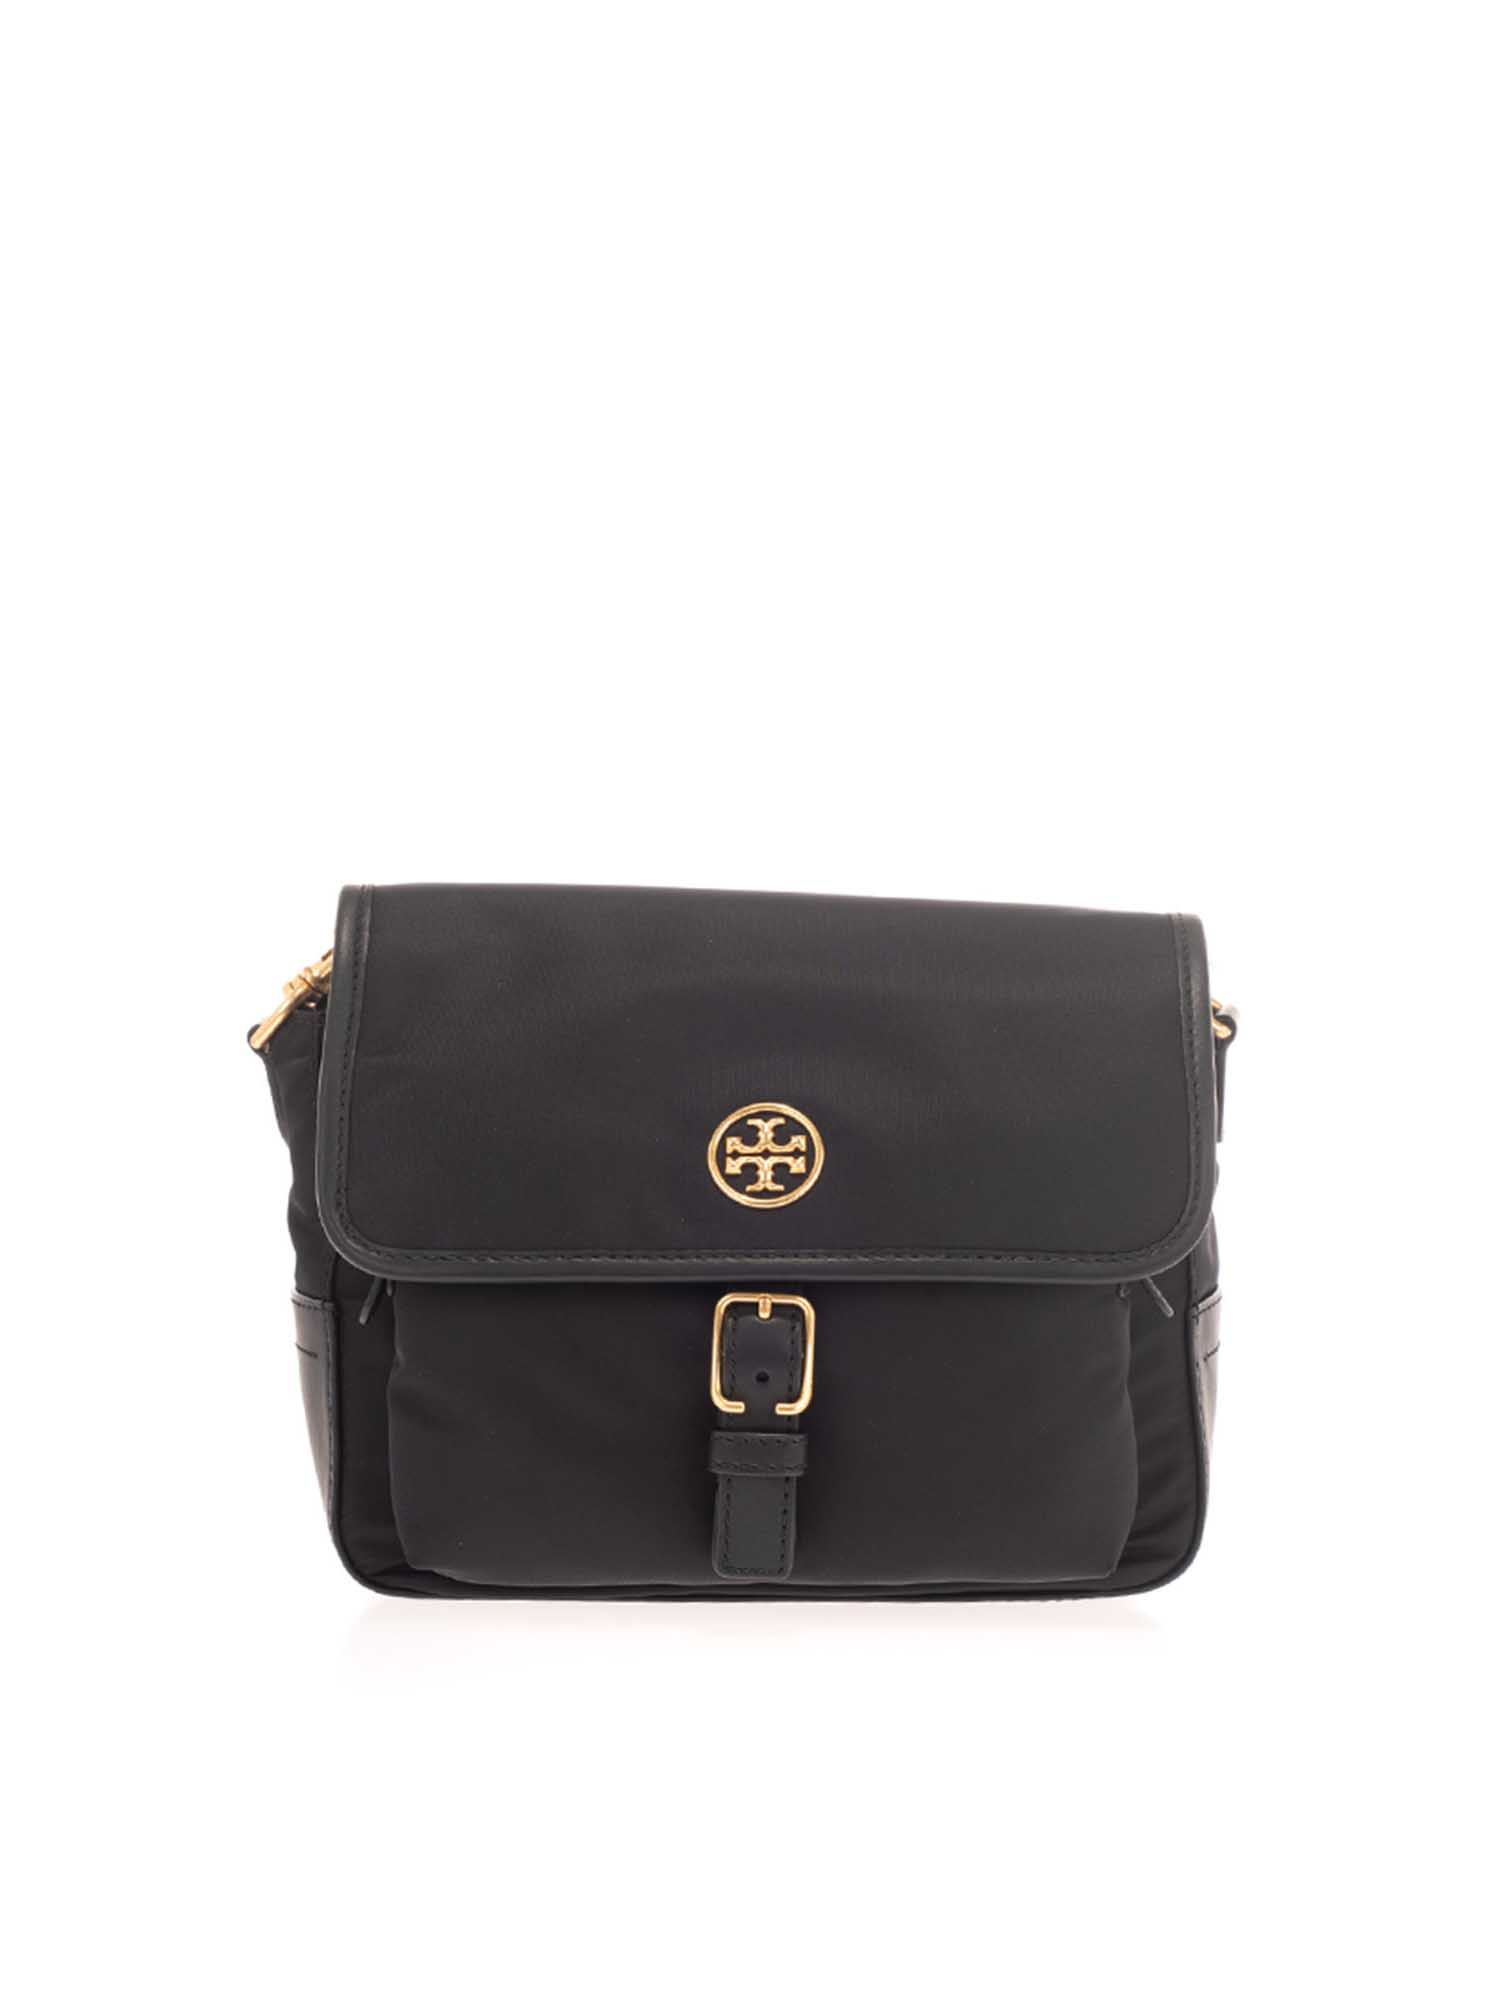 Tory Burch PIPER SHOULDER BAG IN BLACK